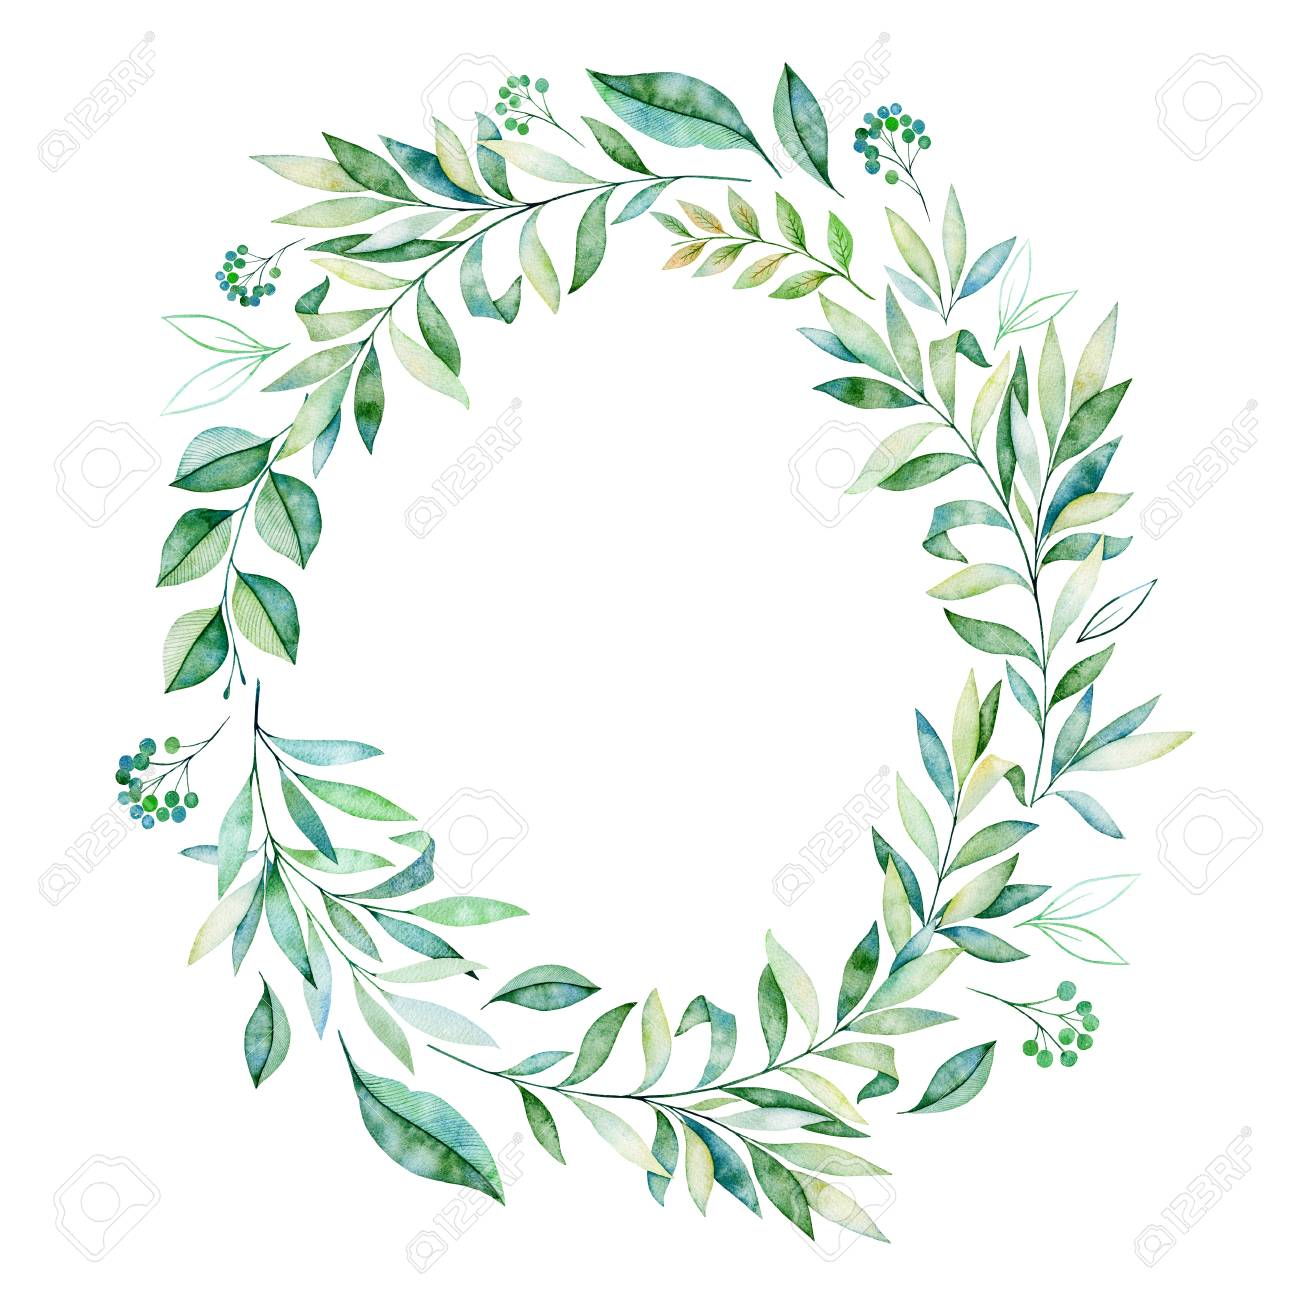 watercolor leaves branch wreath wteath with greens branch stock